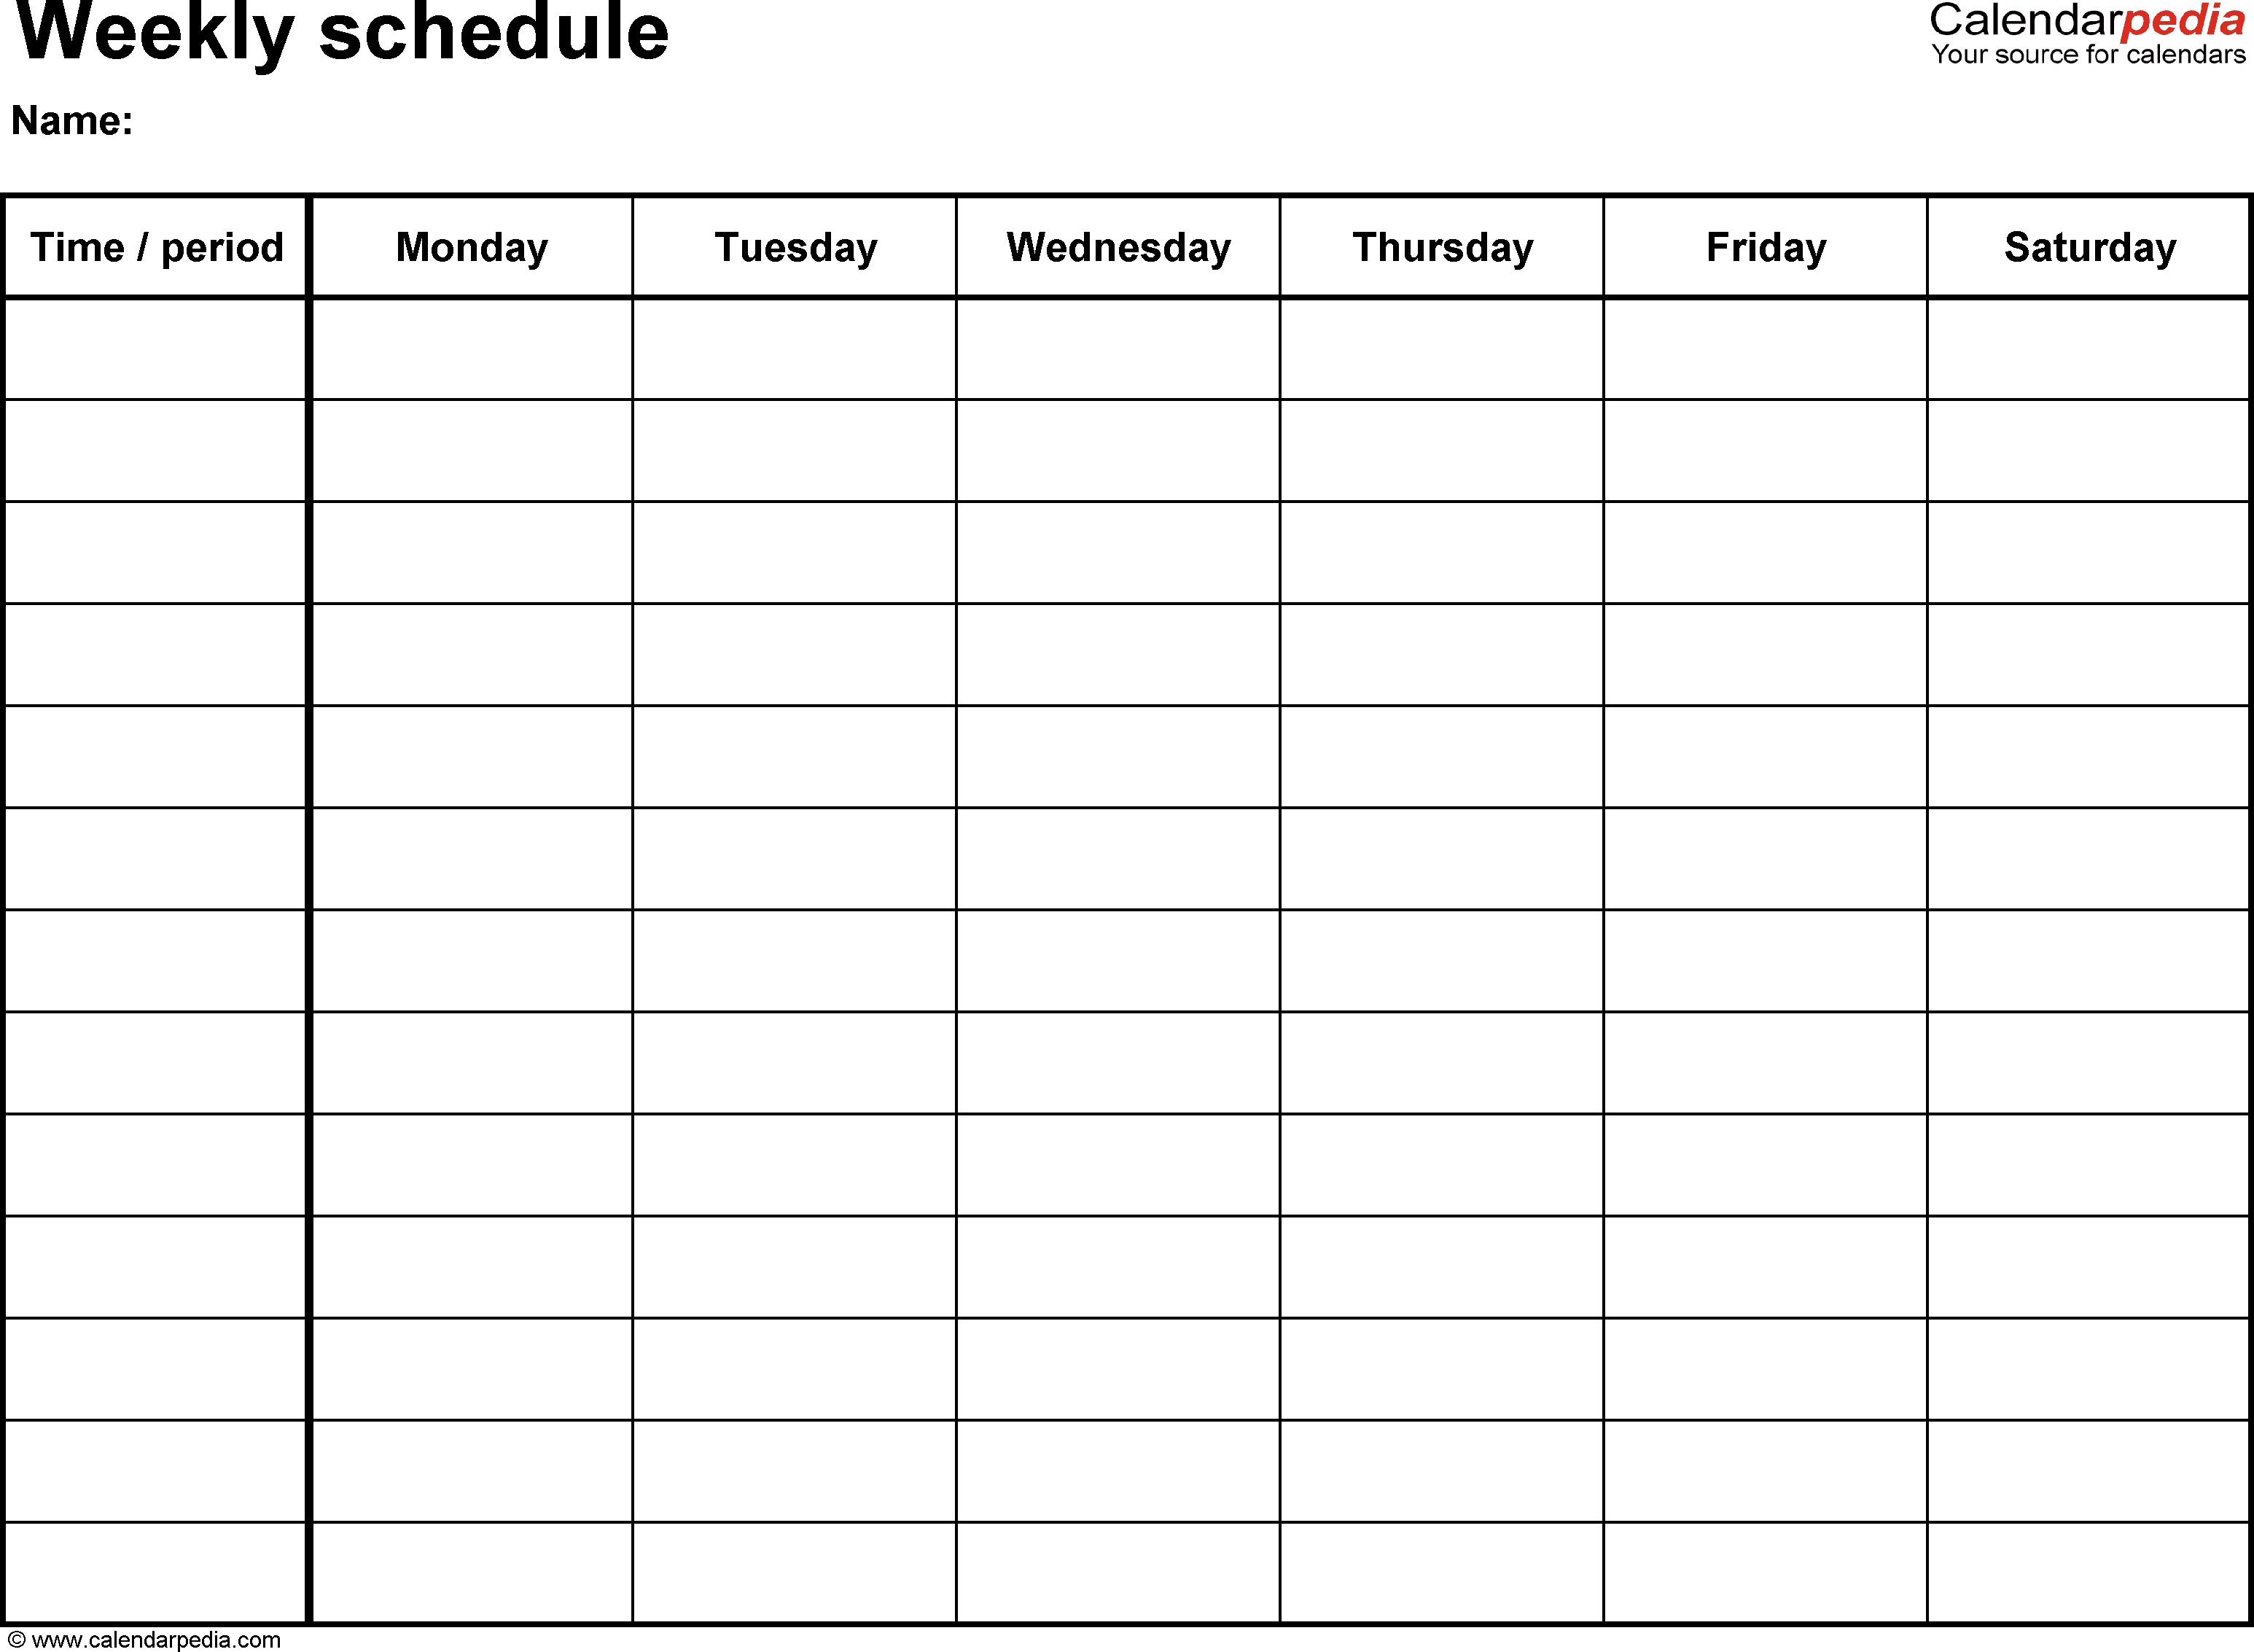 Schedule Template Weekly Hourly Schedule Template